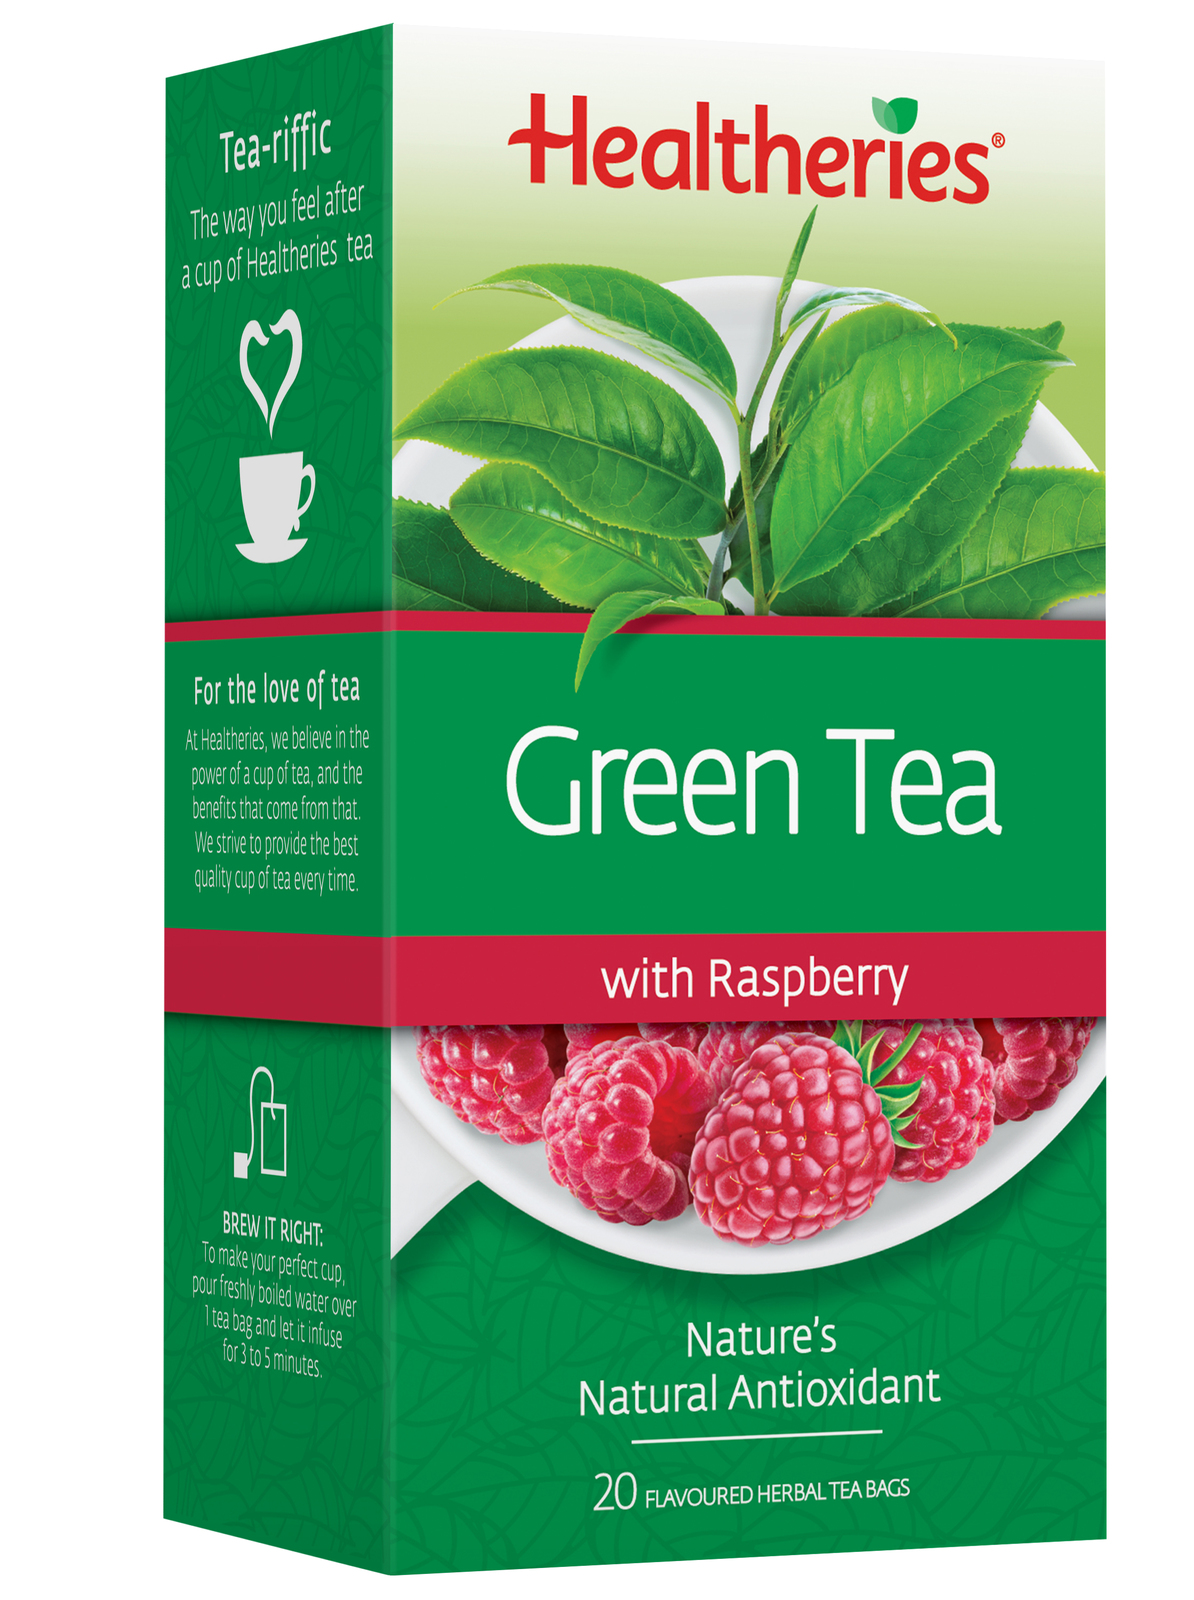 Healtheries Green Tea with Raspberry (Pack of 20) image